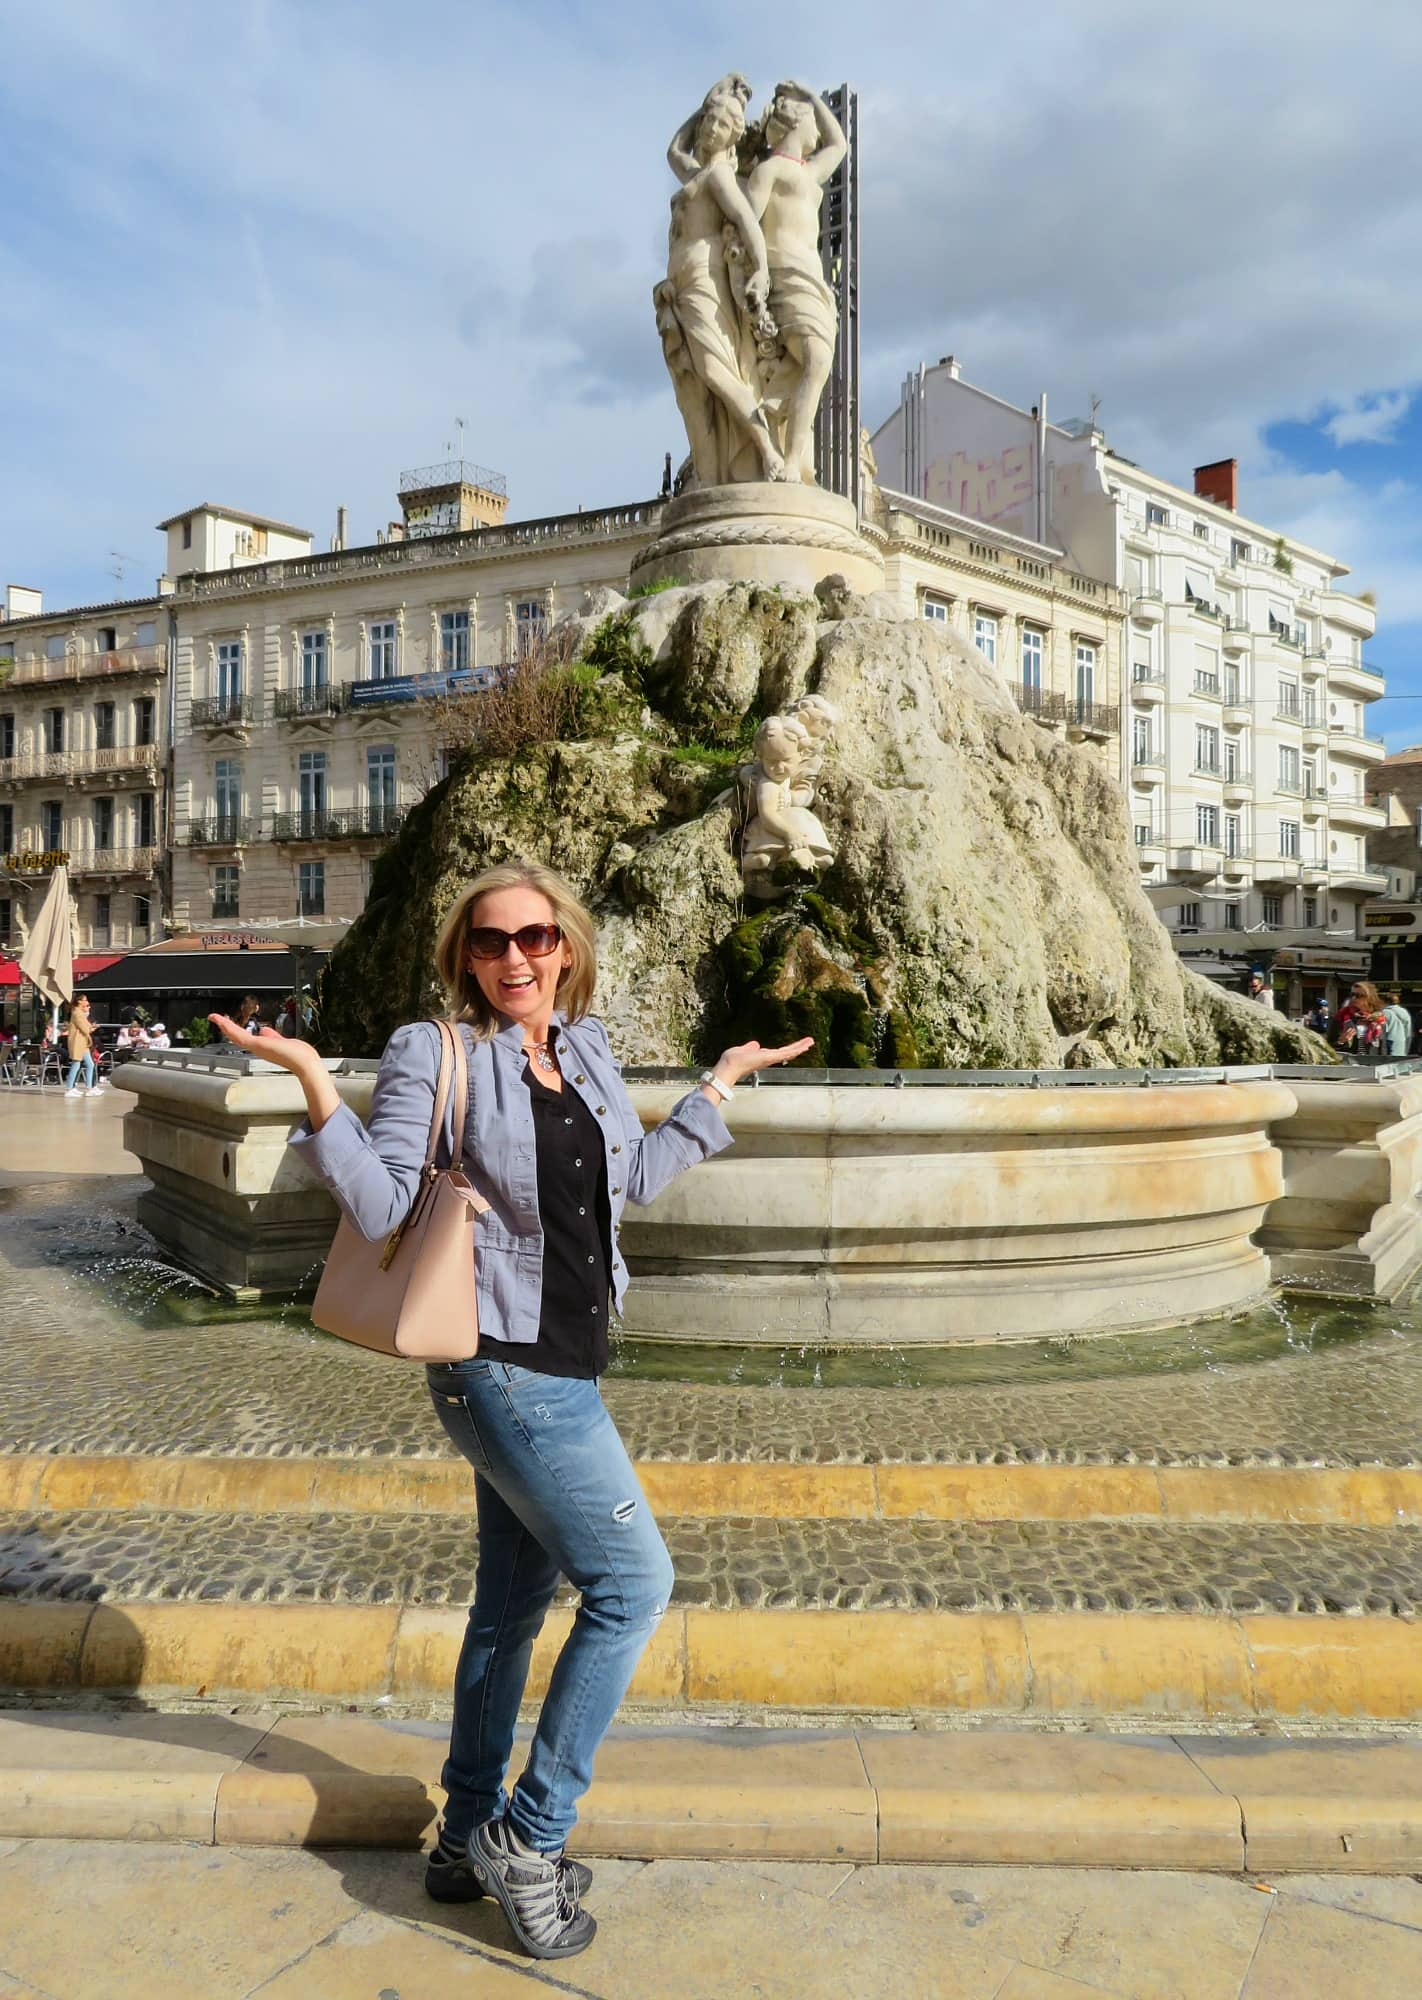 Rosetta Stone helped me feel more confident speaking French in my former college town of Montpellier